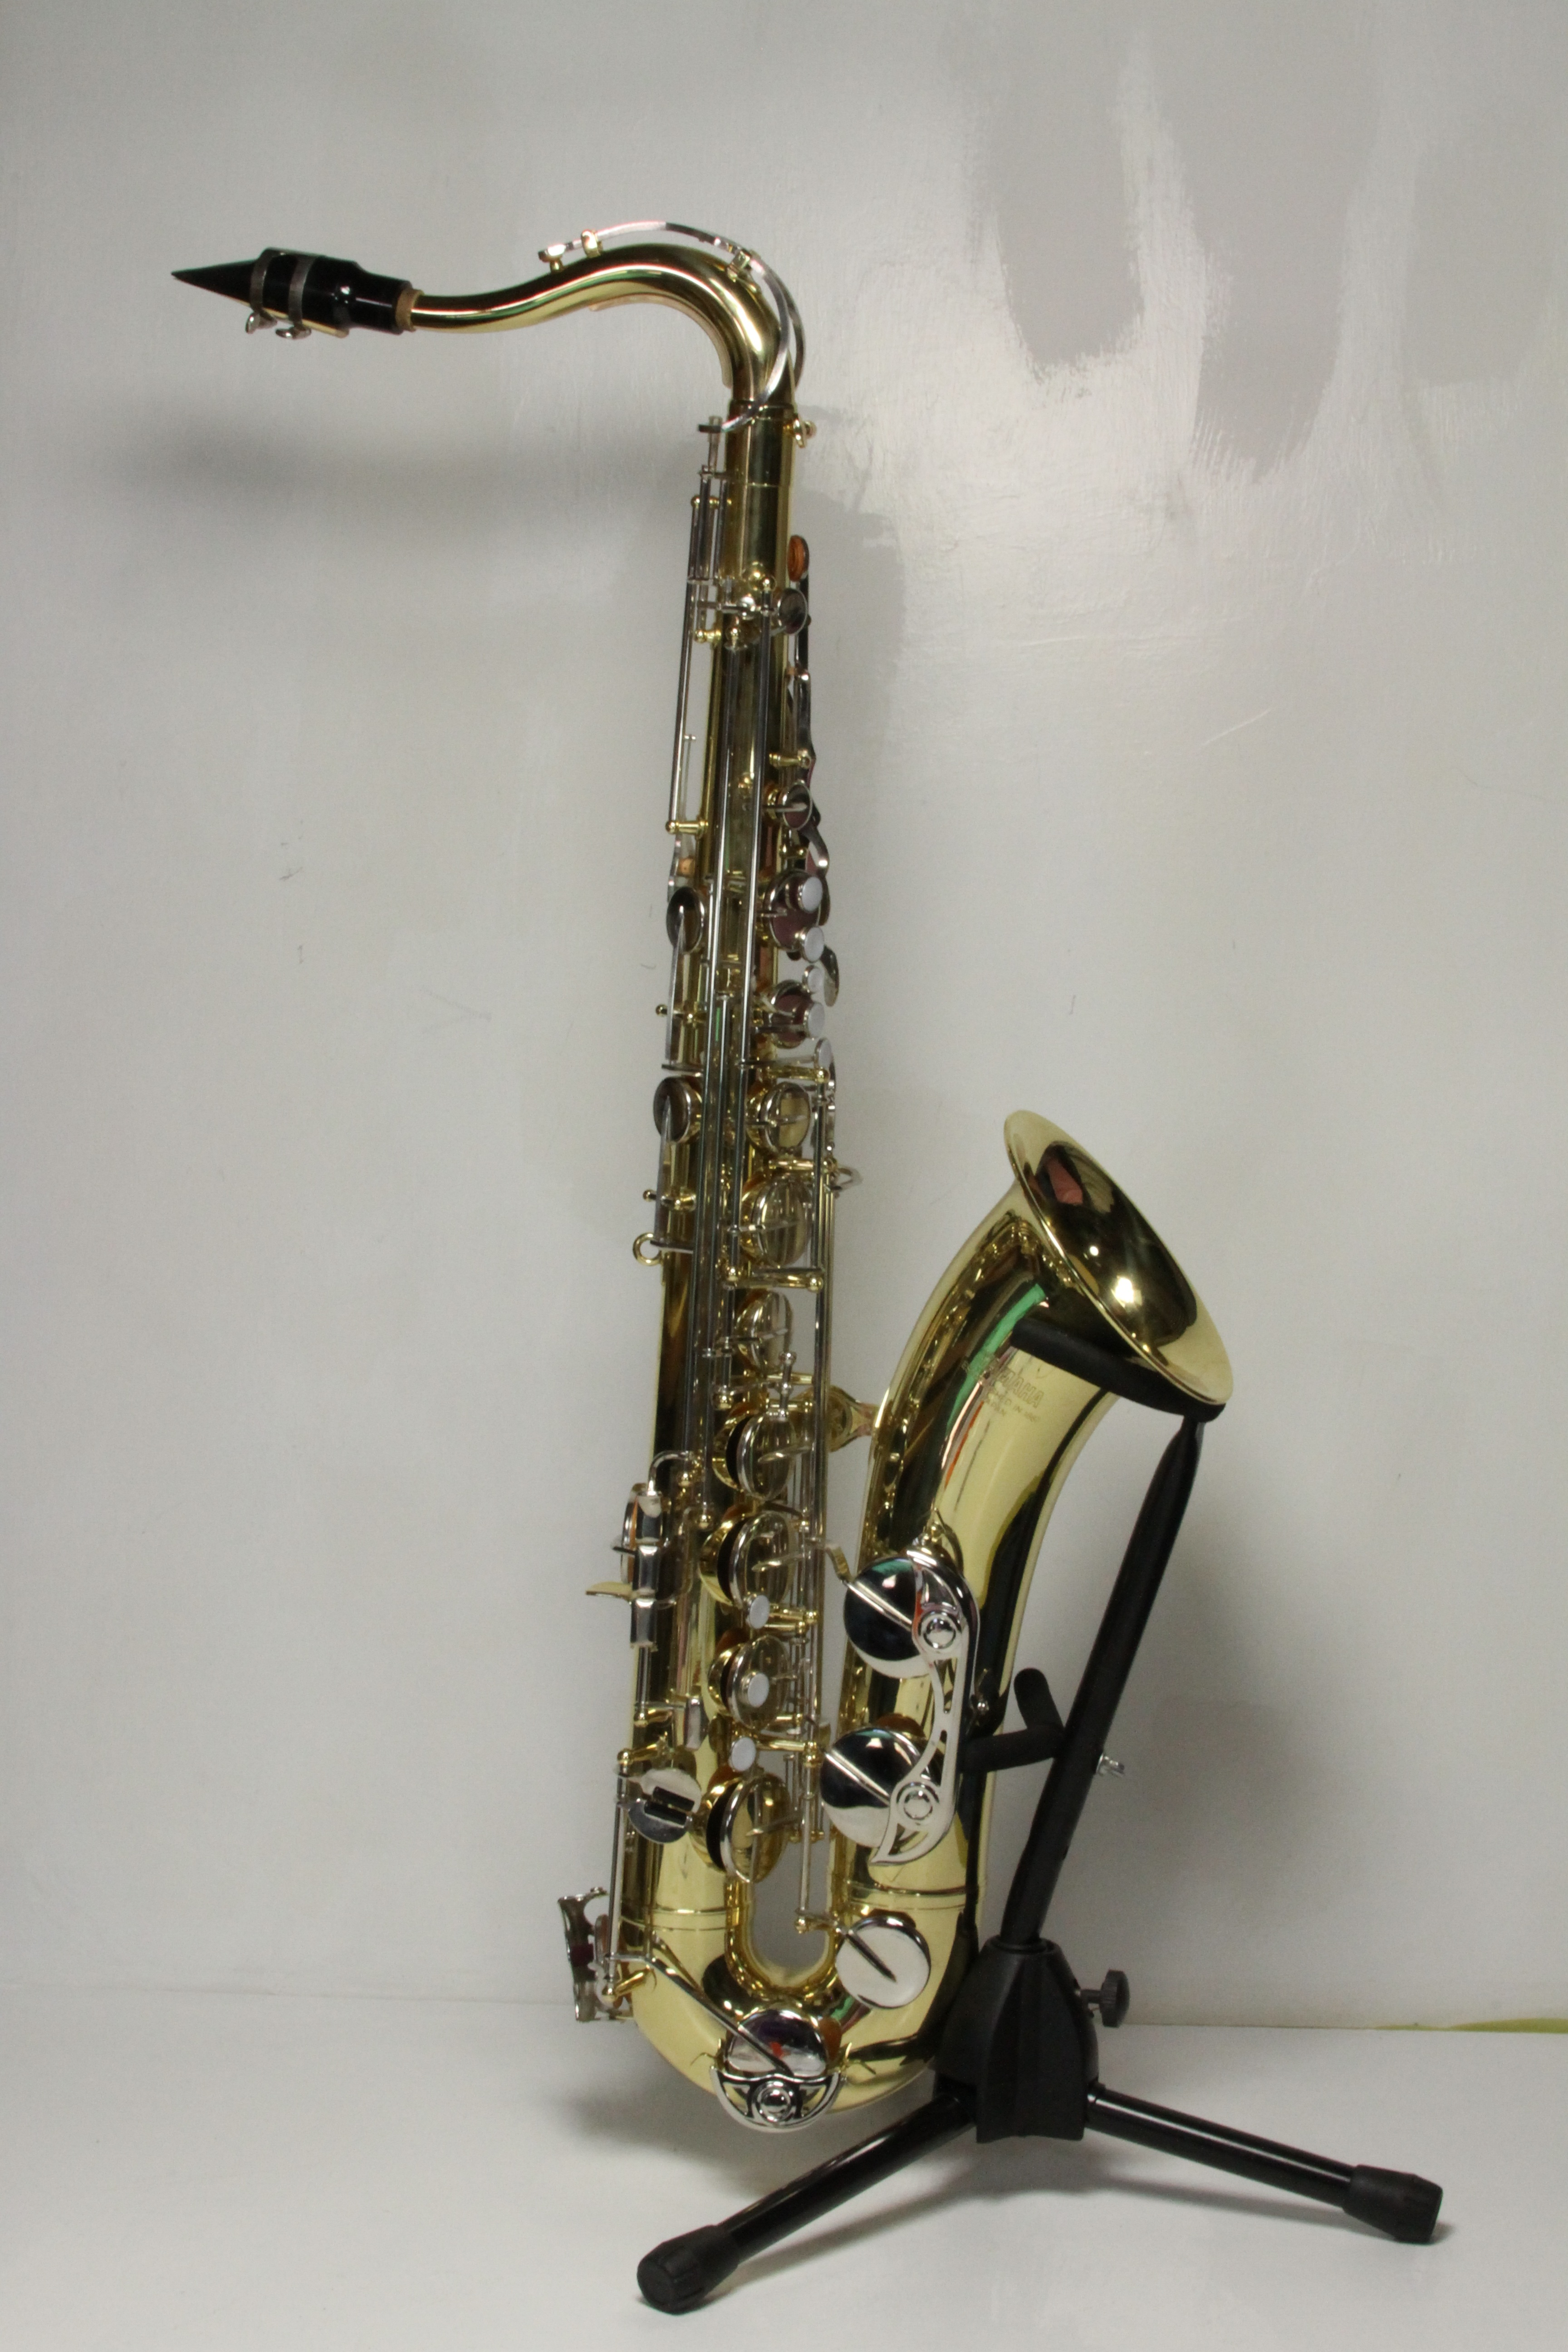 yamaha ts 100 tenor saxophone in case used with 3 months warranty ebay. Black Bedroom Furniture Sets. Home Design Ideas